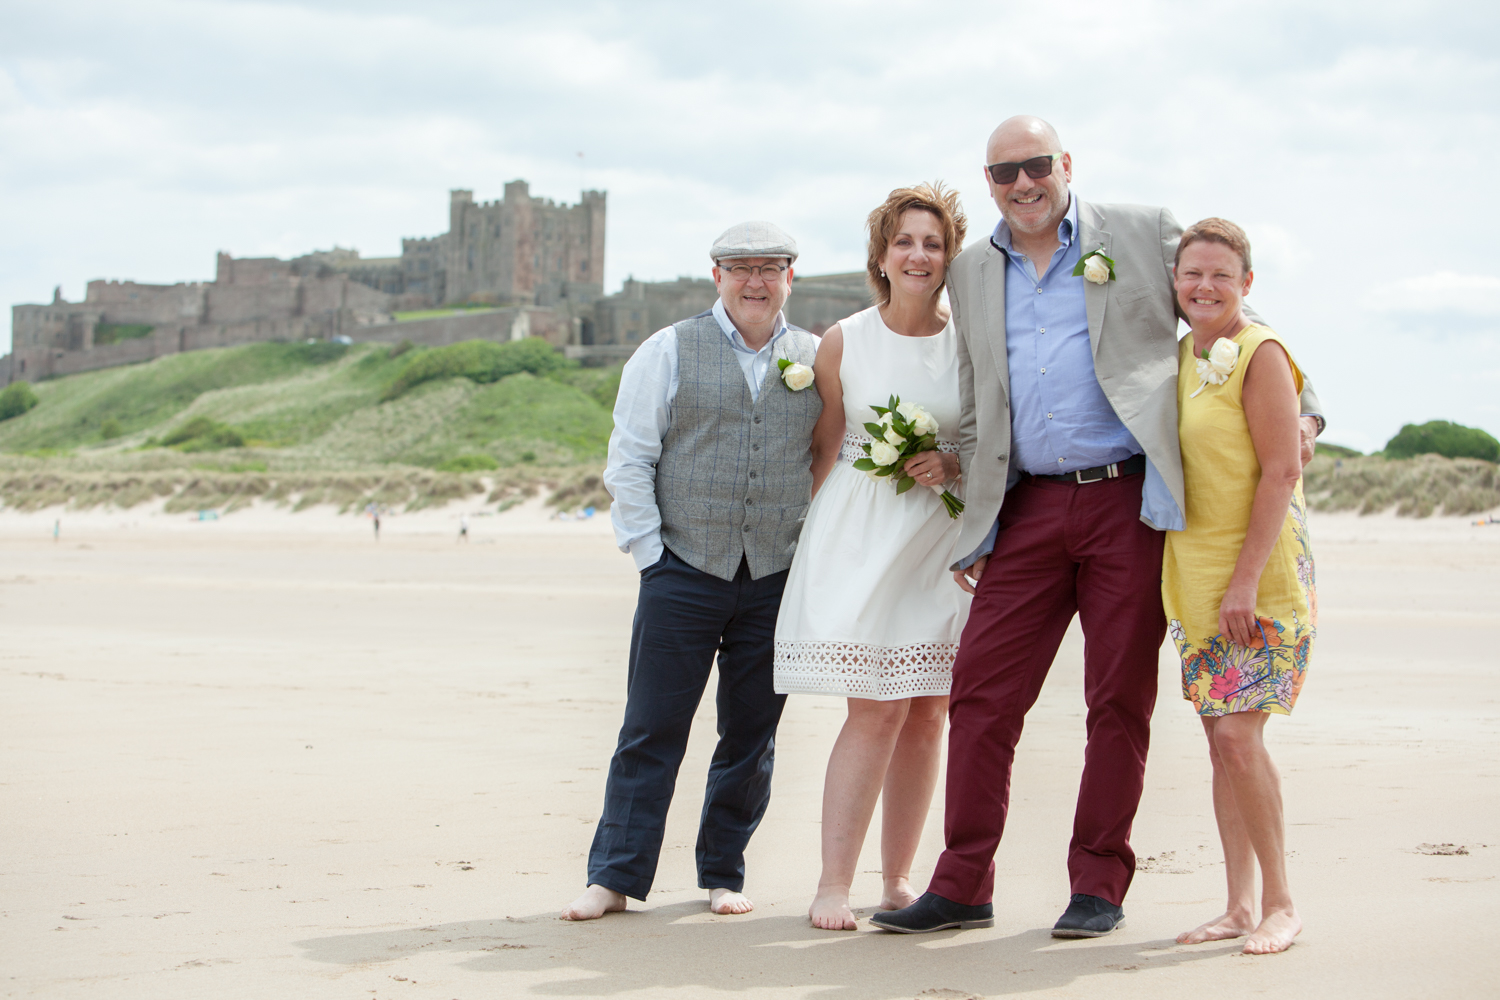 wedding-bamburgh-pictorial-elopement-friends-beach-1025.jpg